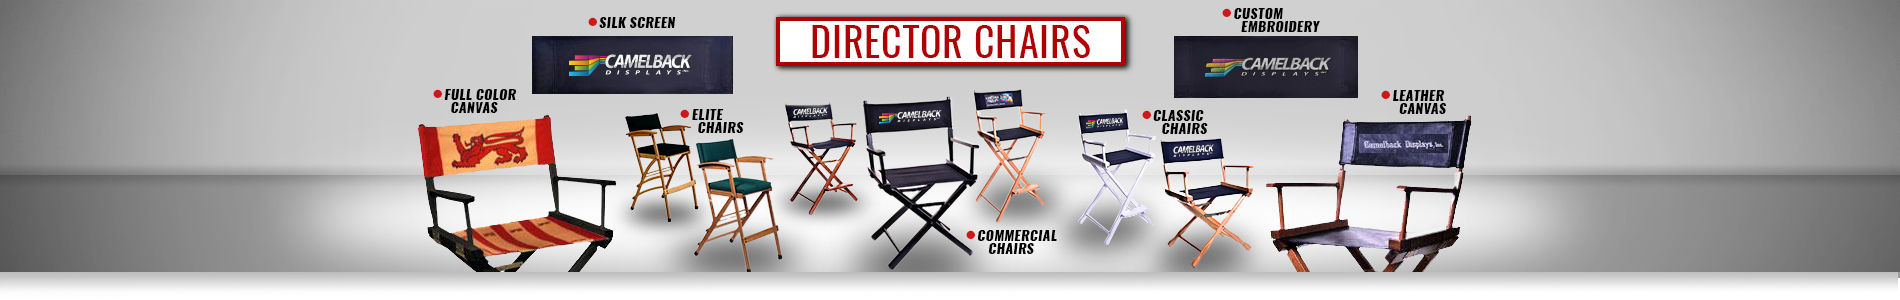 Gold Metal Commercial Director Chairs